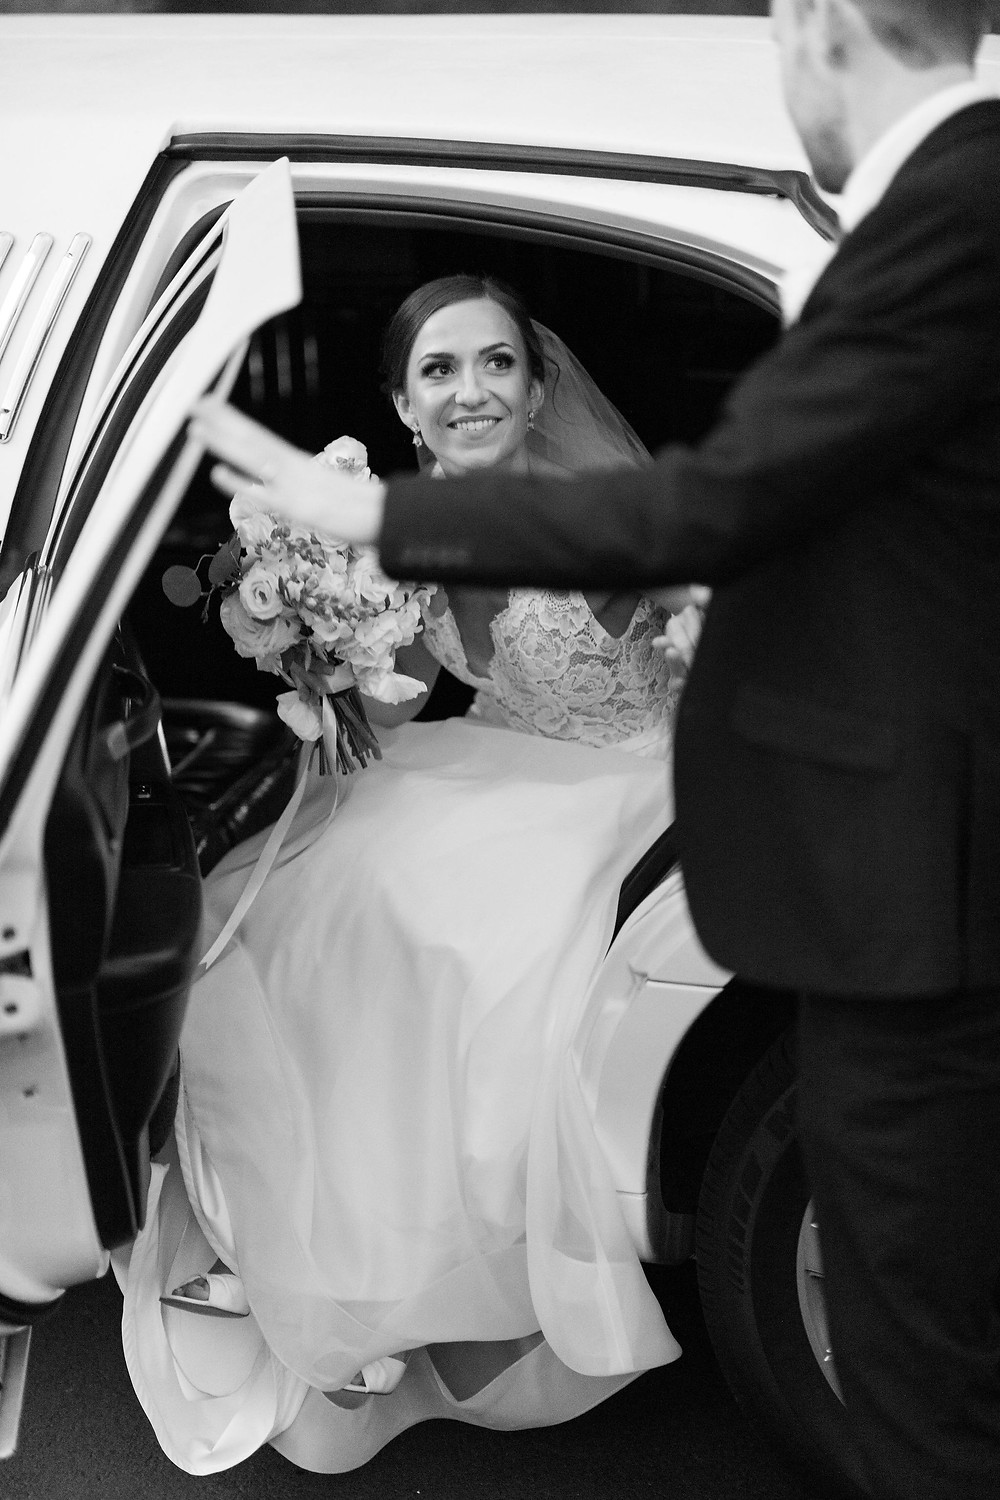 groom opening the door to let the bride out of the limo